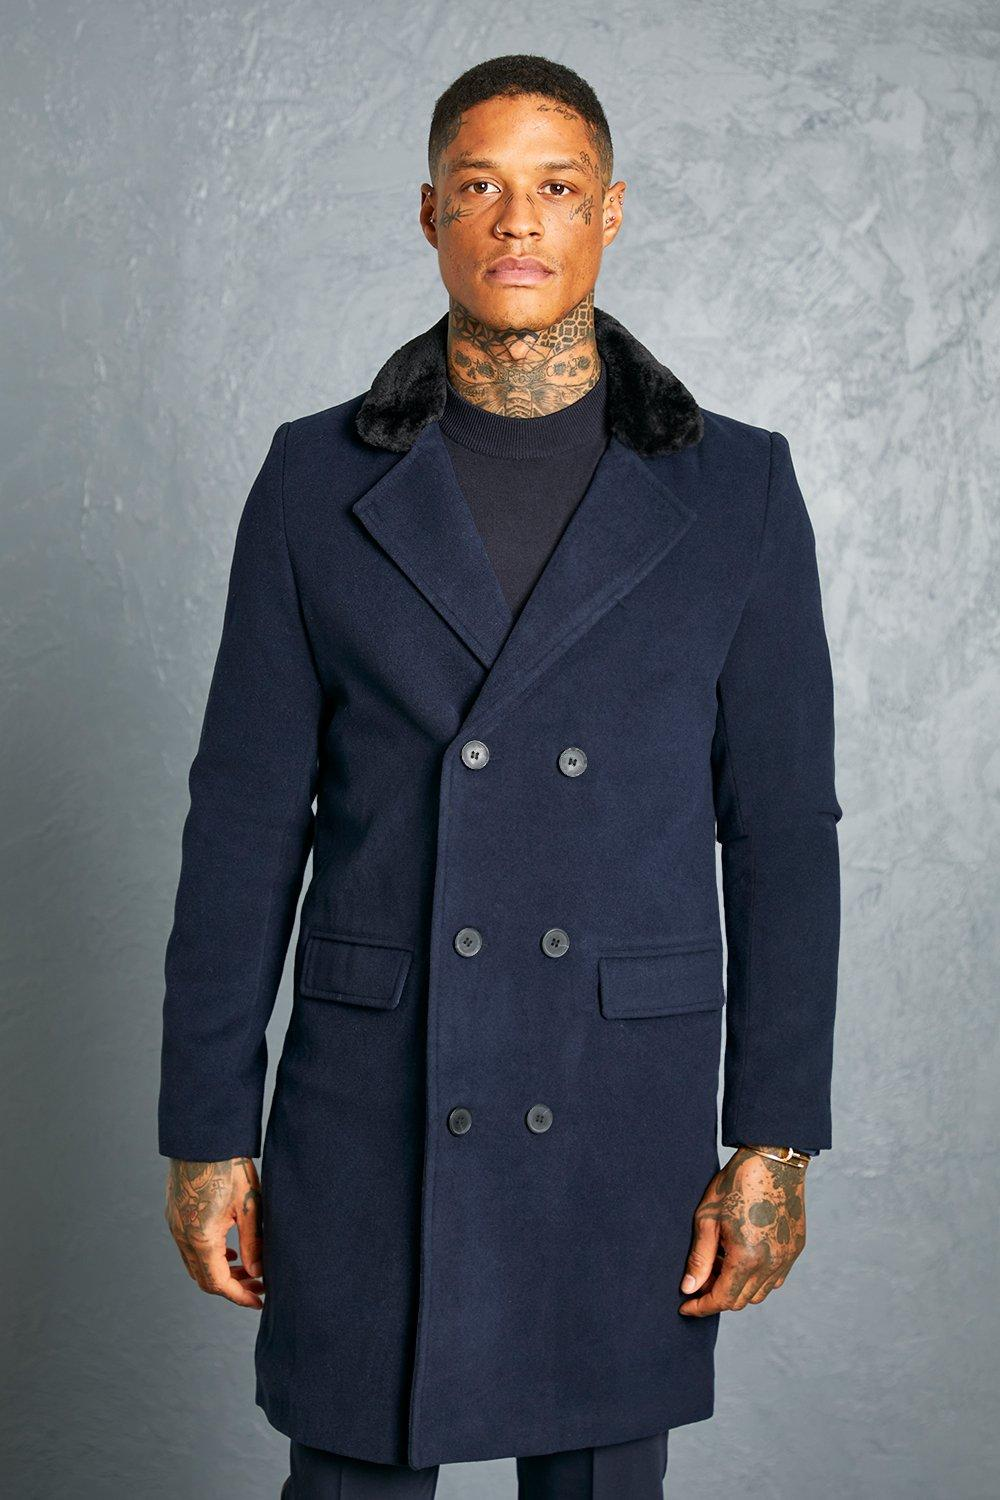 60s 70s Men's Jackets & Sweaters Mens Recycled Double Breasted Faux Fur Overcoat - Navy $95.00 AT vintagedancer.com